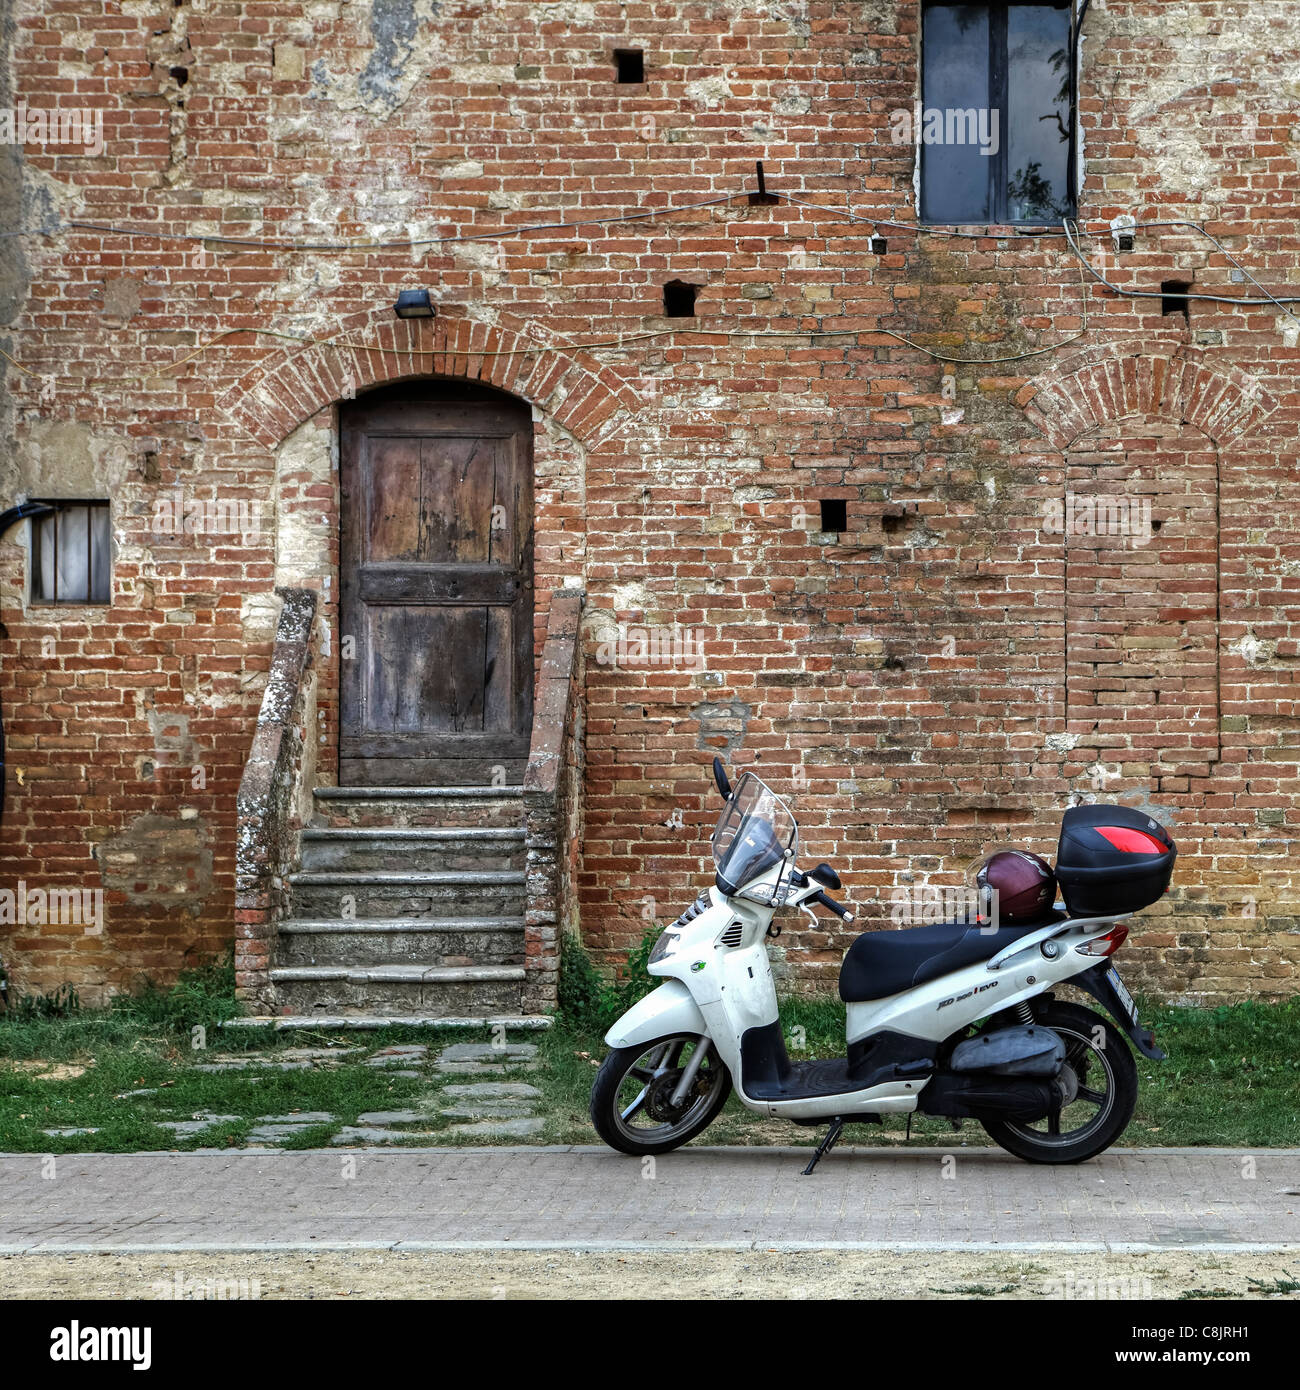 italian lifestyle - old house and a new scooter - Stock Image